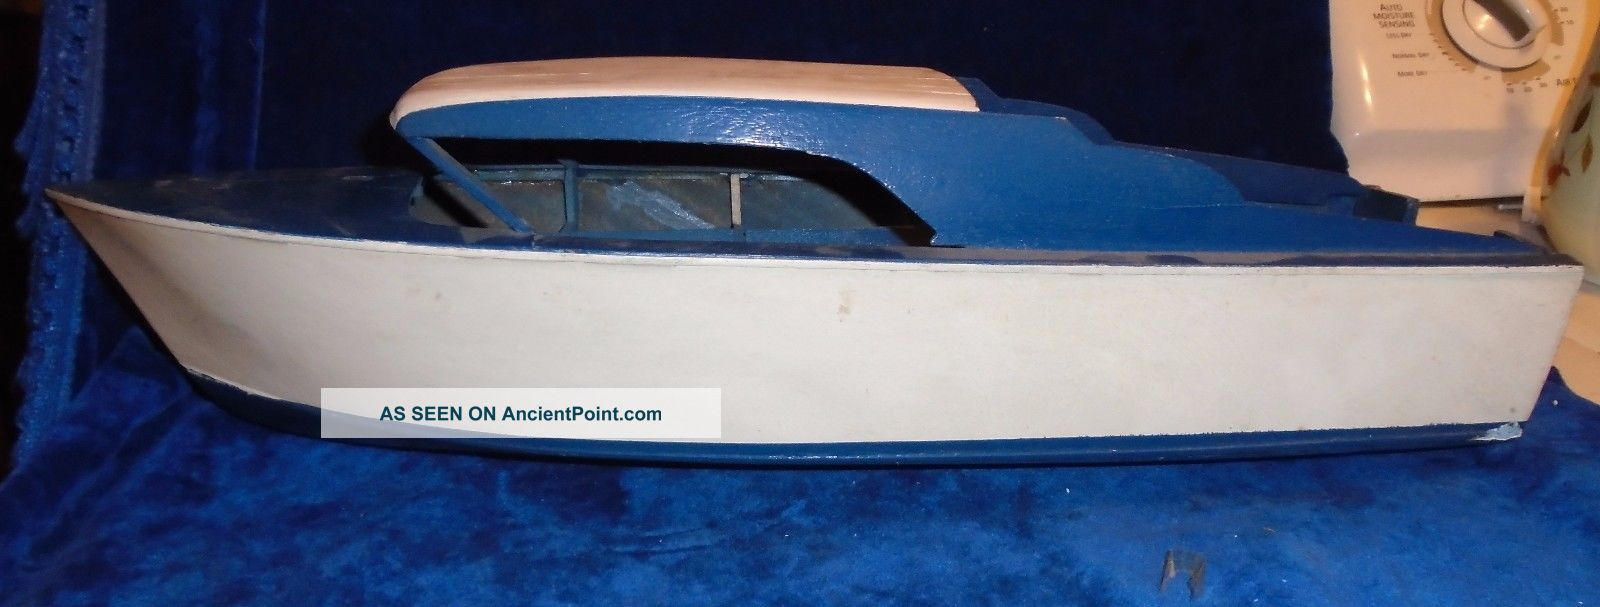 Vintage 1950 ' S Wood Cabin Cruiser Boat,  22 Inches Long Model Ships photo